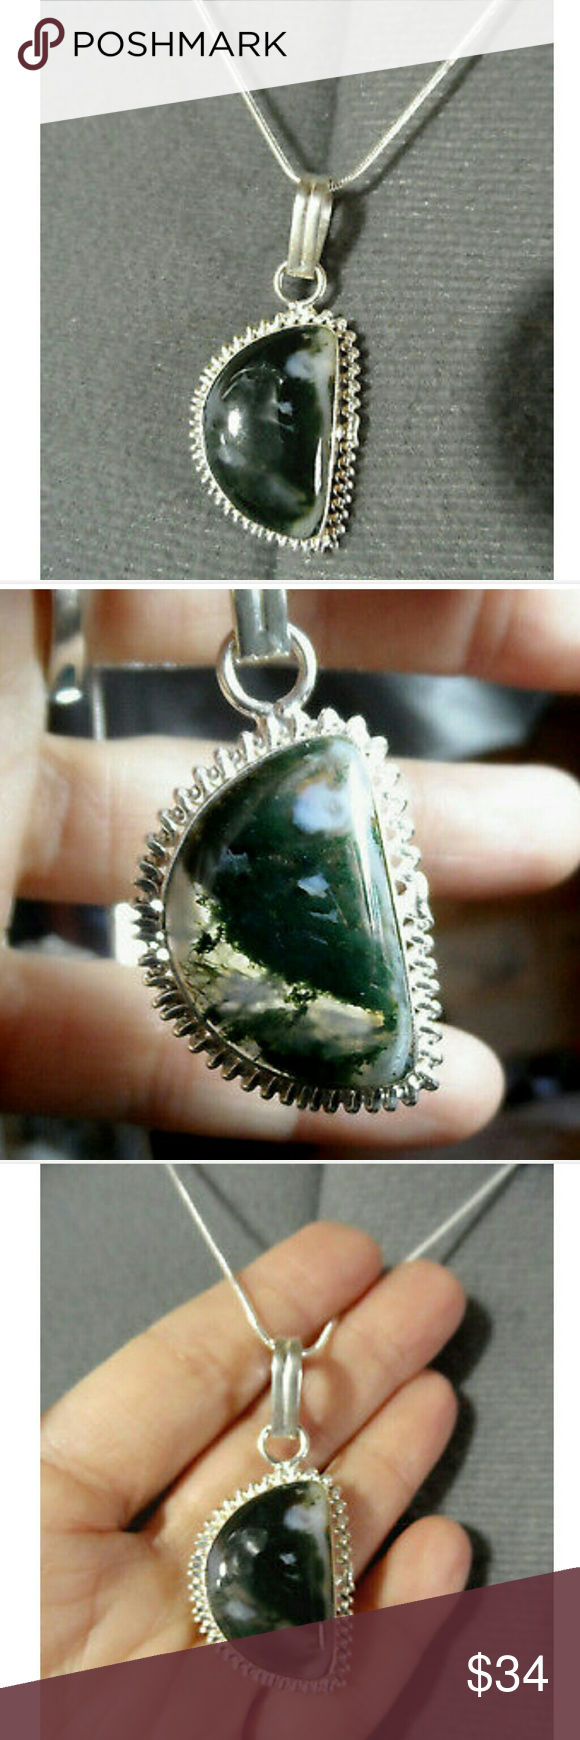 New moss agate moon pendant necklace set moss agate moon